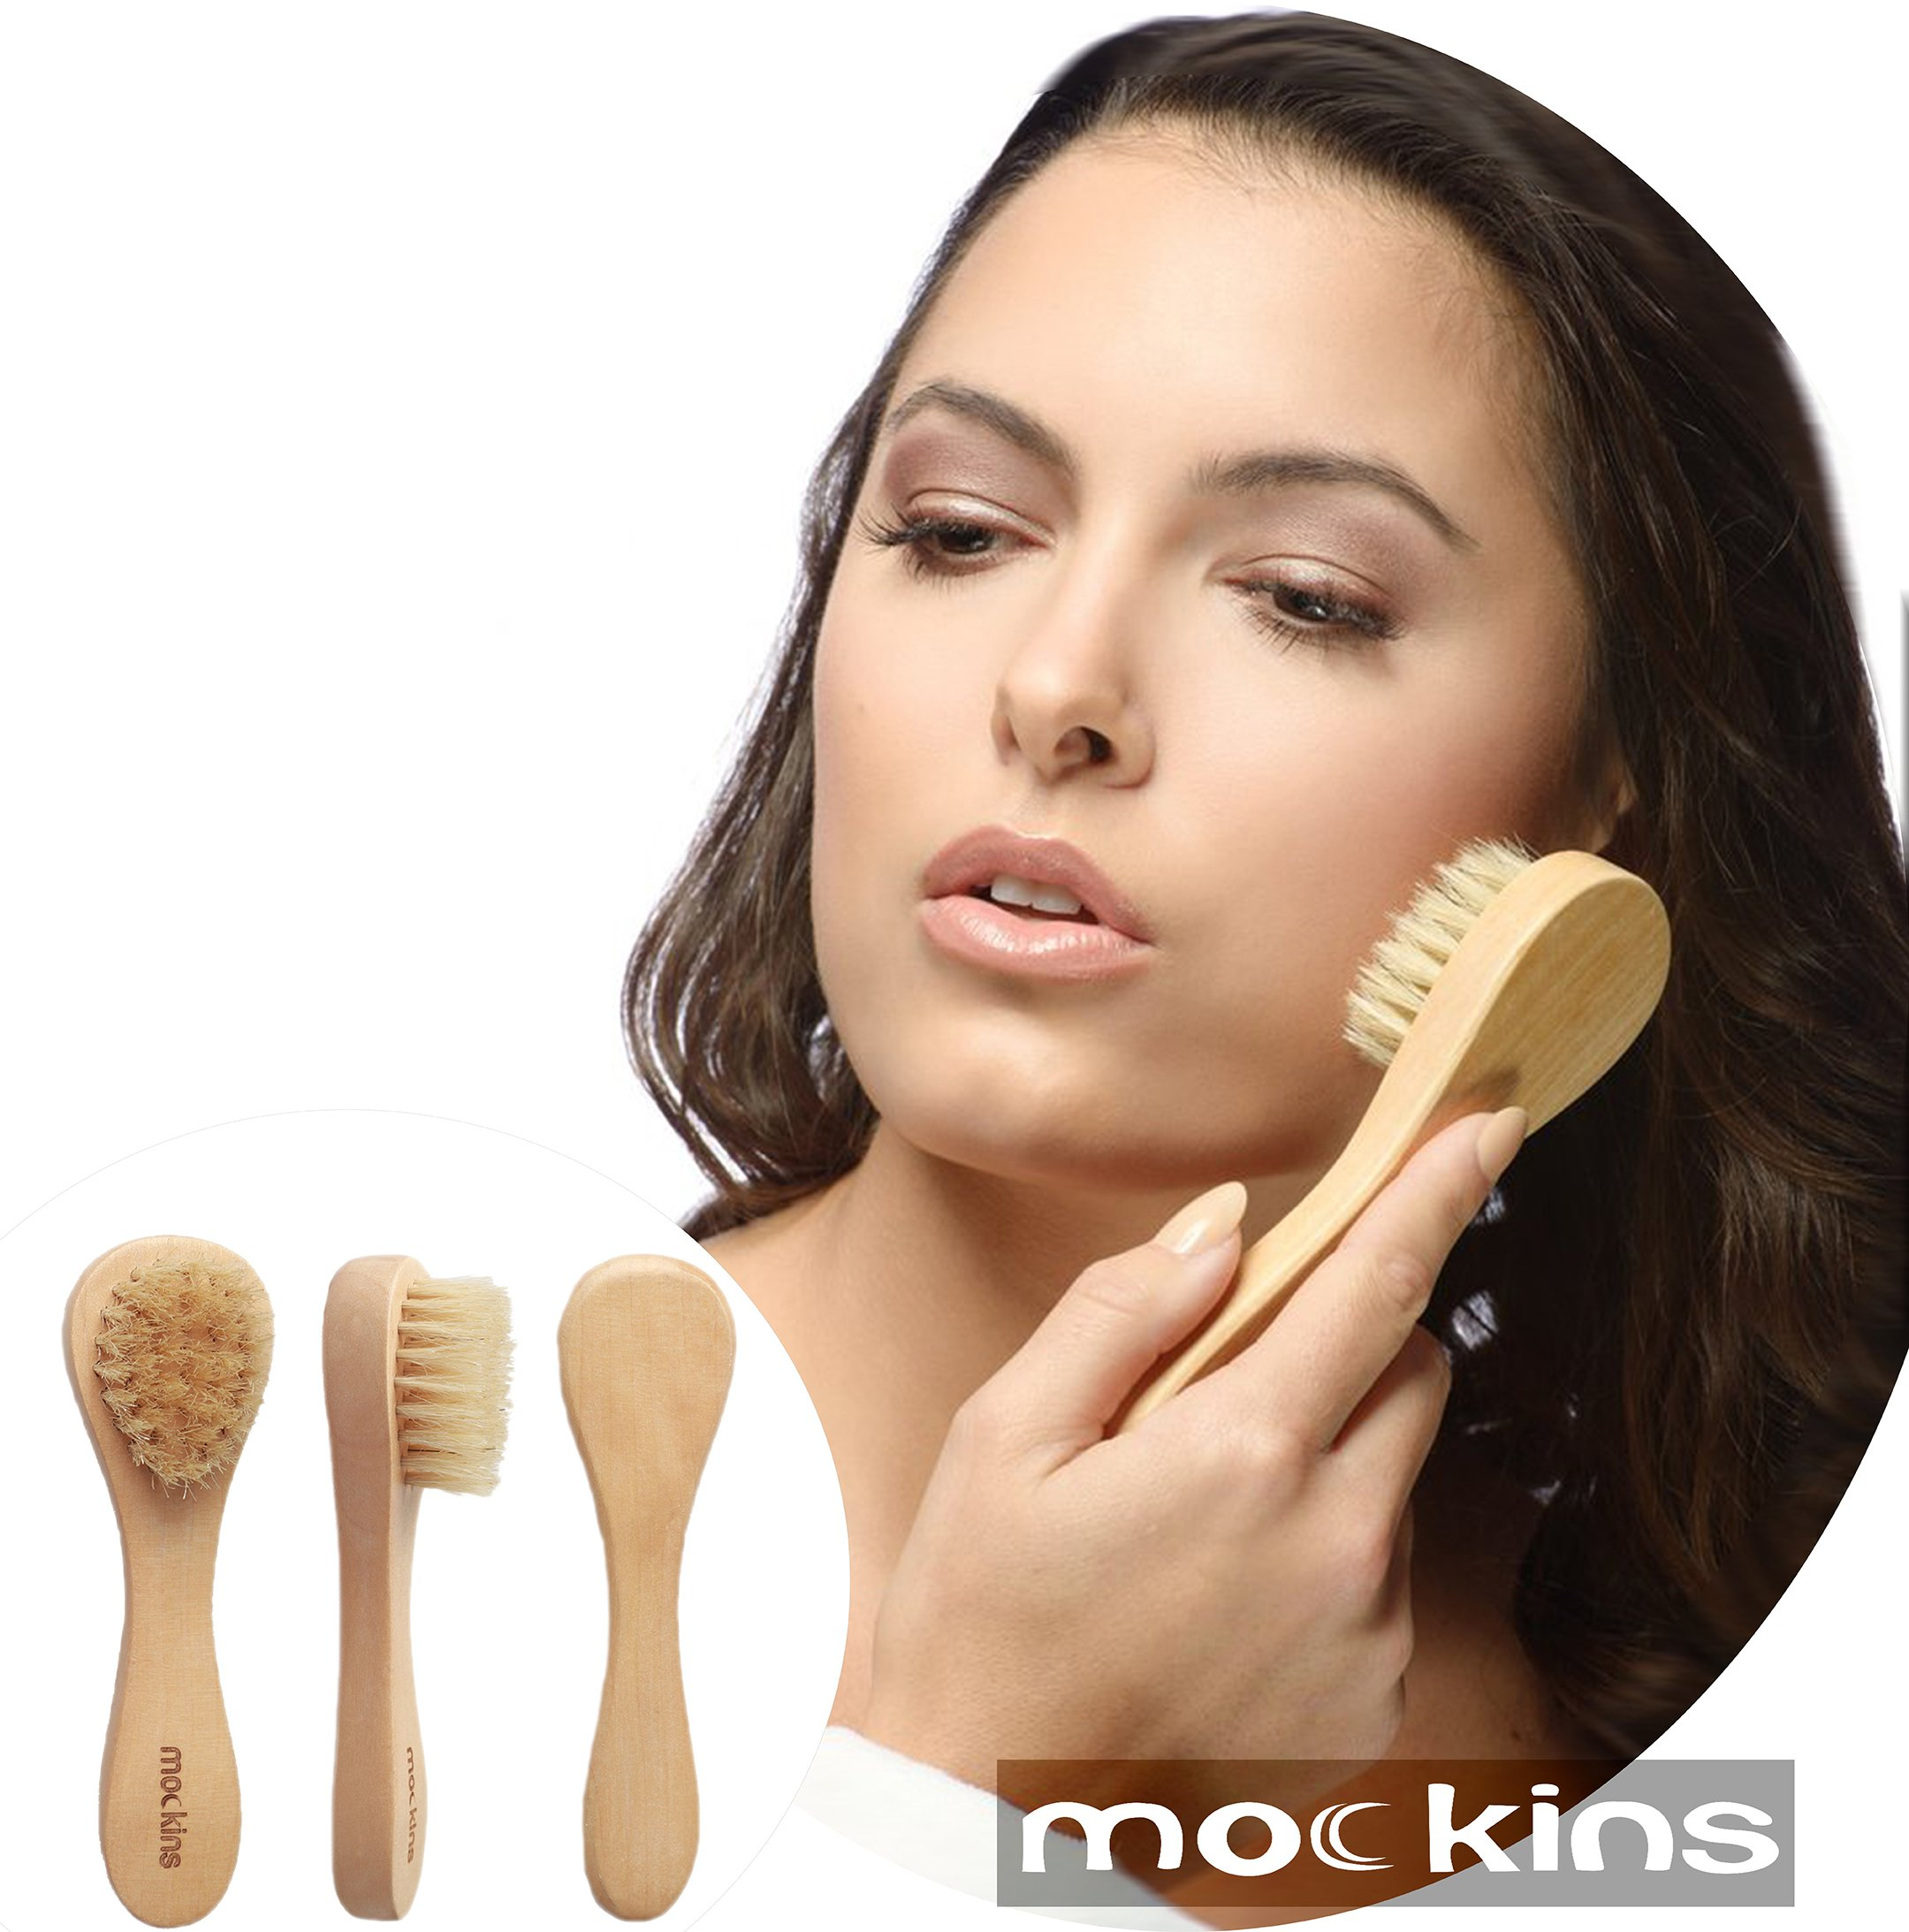 mockins Natural Boar Bristle Body Brush Set With Detachable Cellulite Brush And Long Wooden Handle For Dry Brushing Perfect Kit To Exfoliate And Alleviate Cellulite - Best Mother's Day Gift Set … … by Mockins (Image #5)